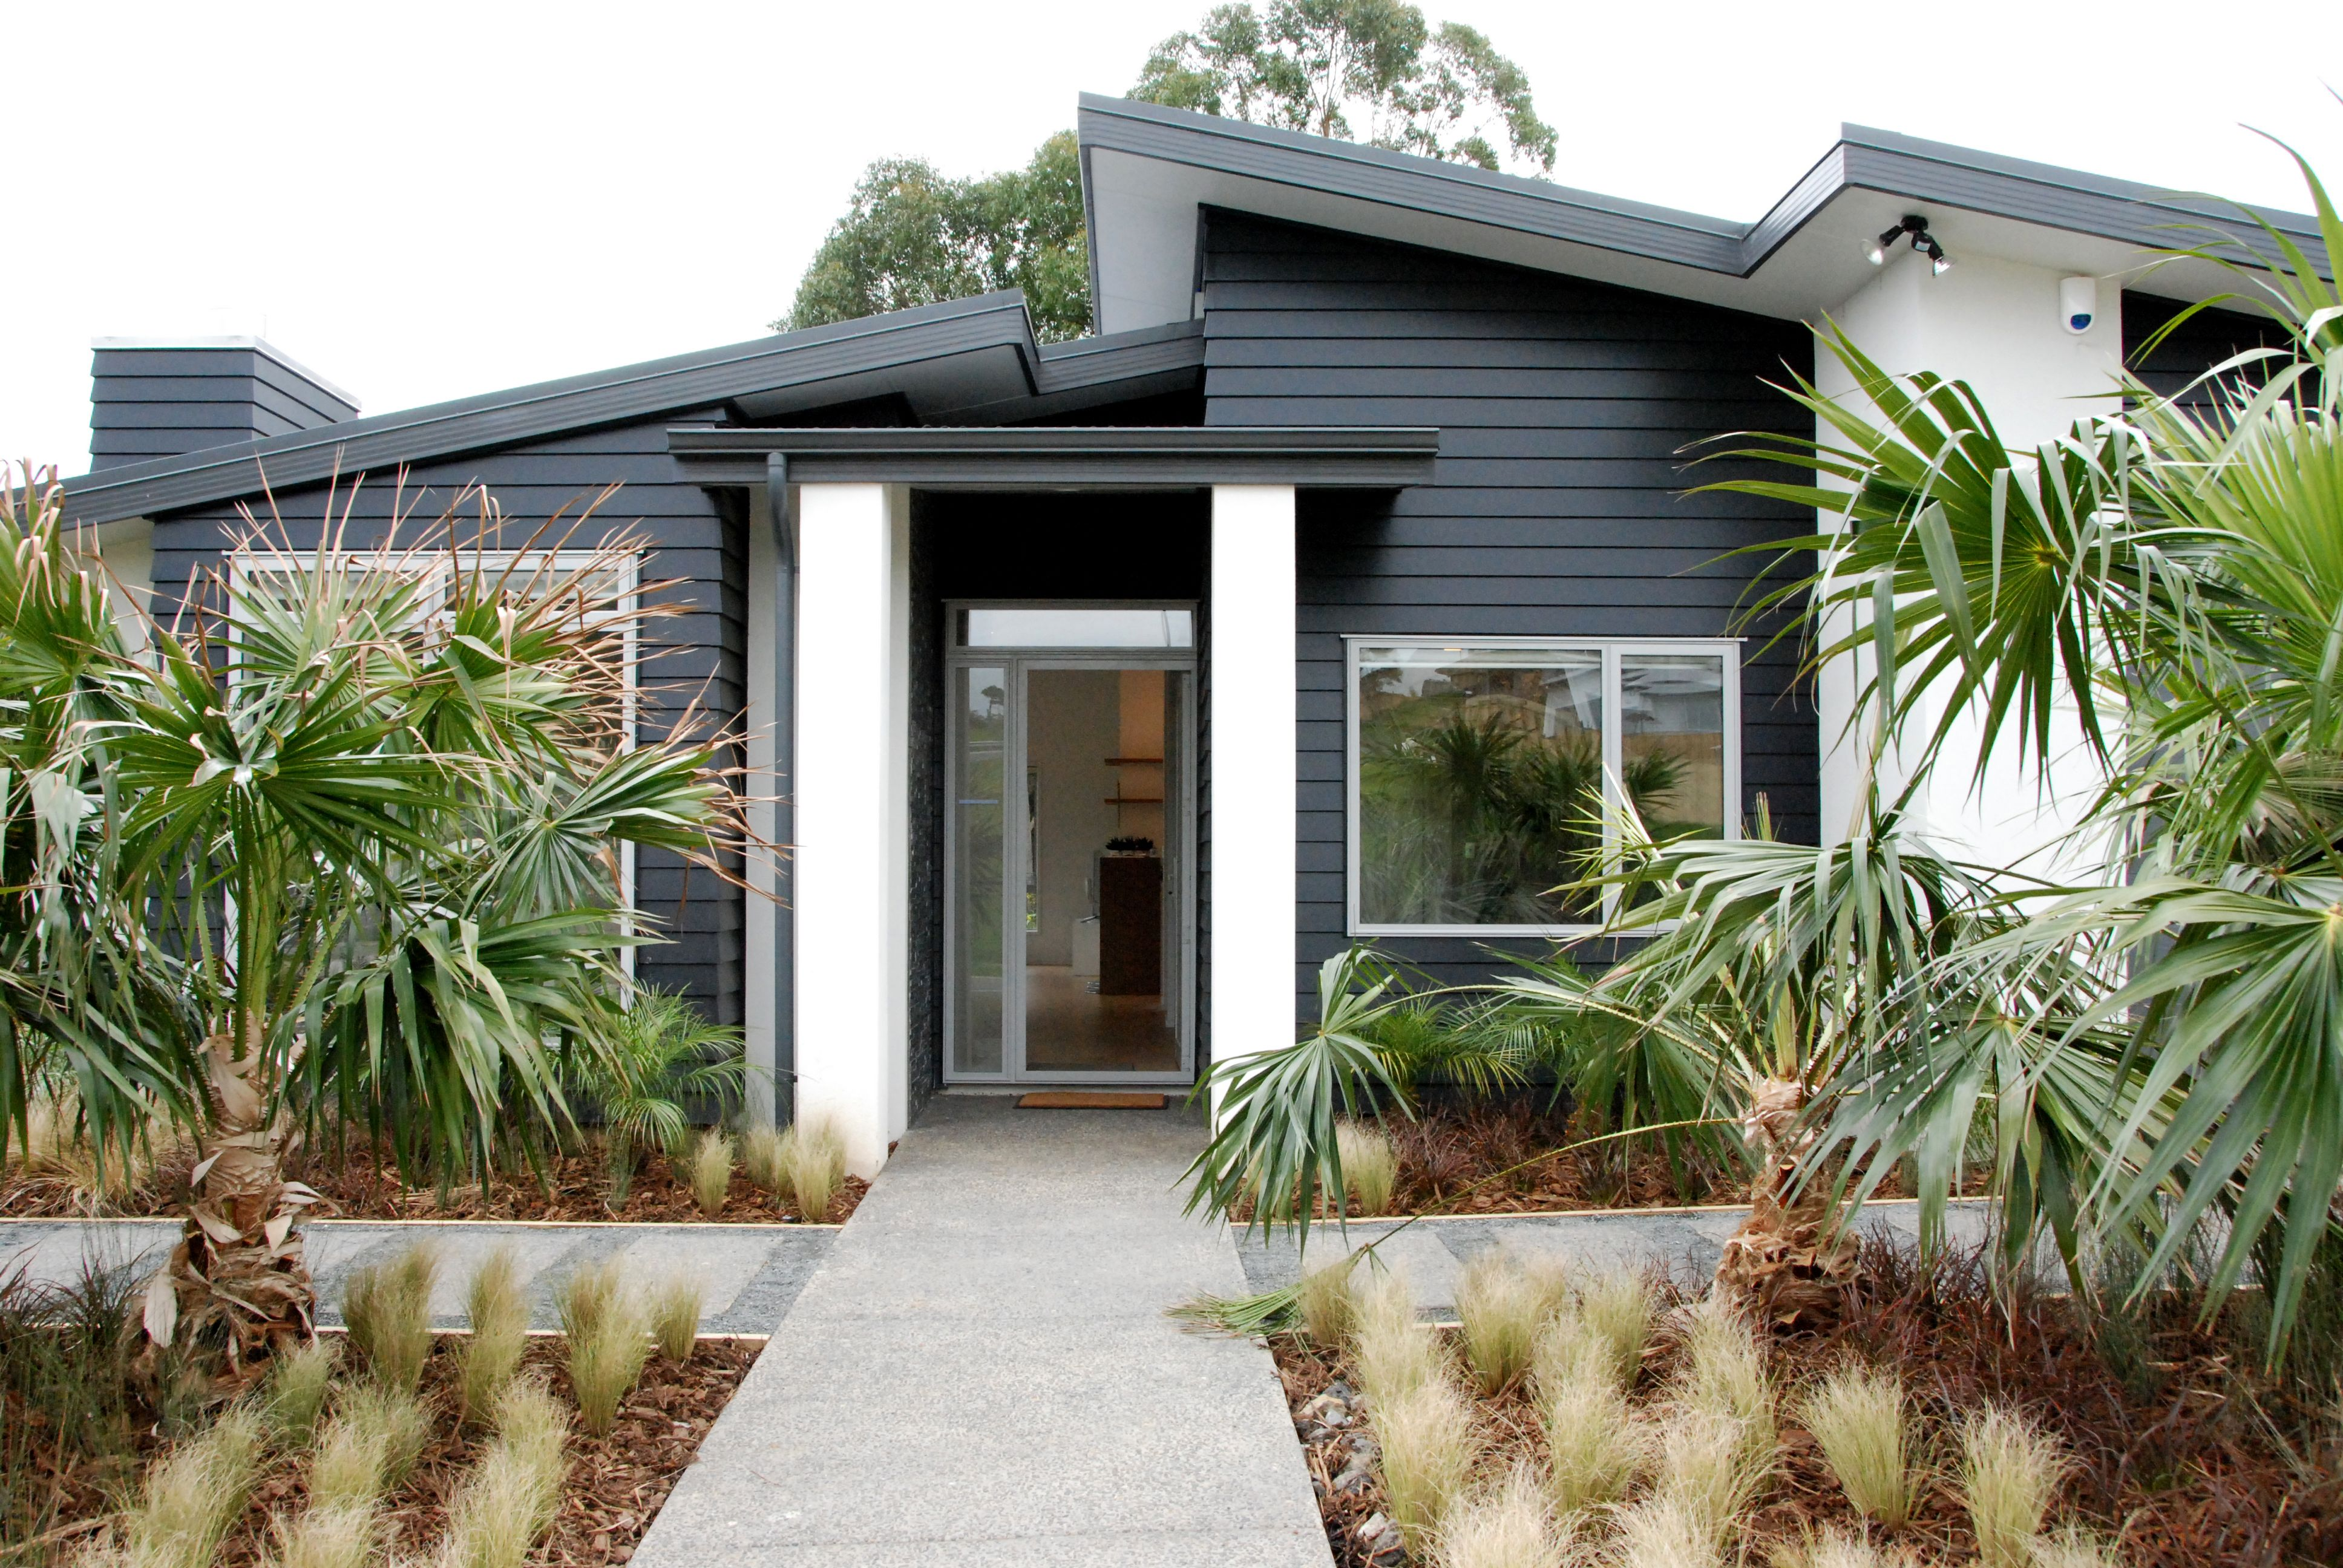 Our salinger home design with a mono pitch roof and blue weatherboard and white plaster nikau palms and native grasses give it a nz bach feel